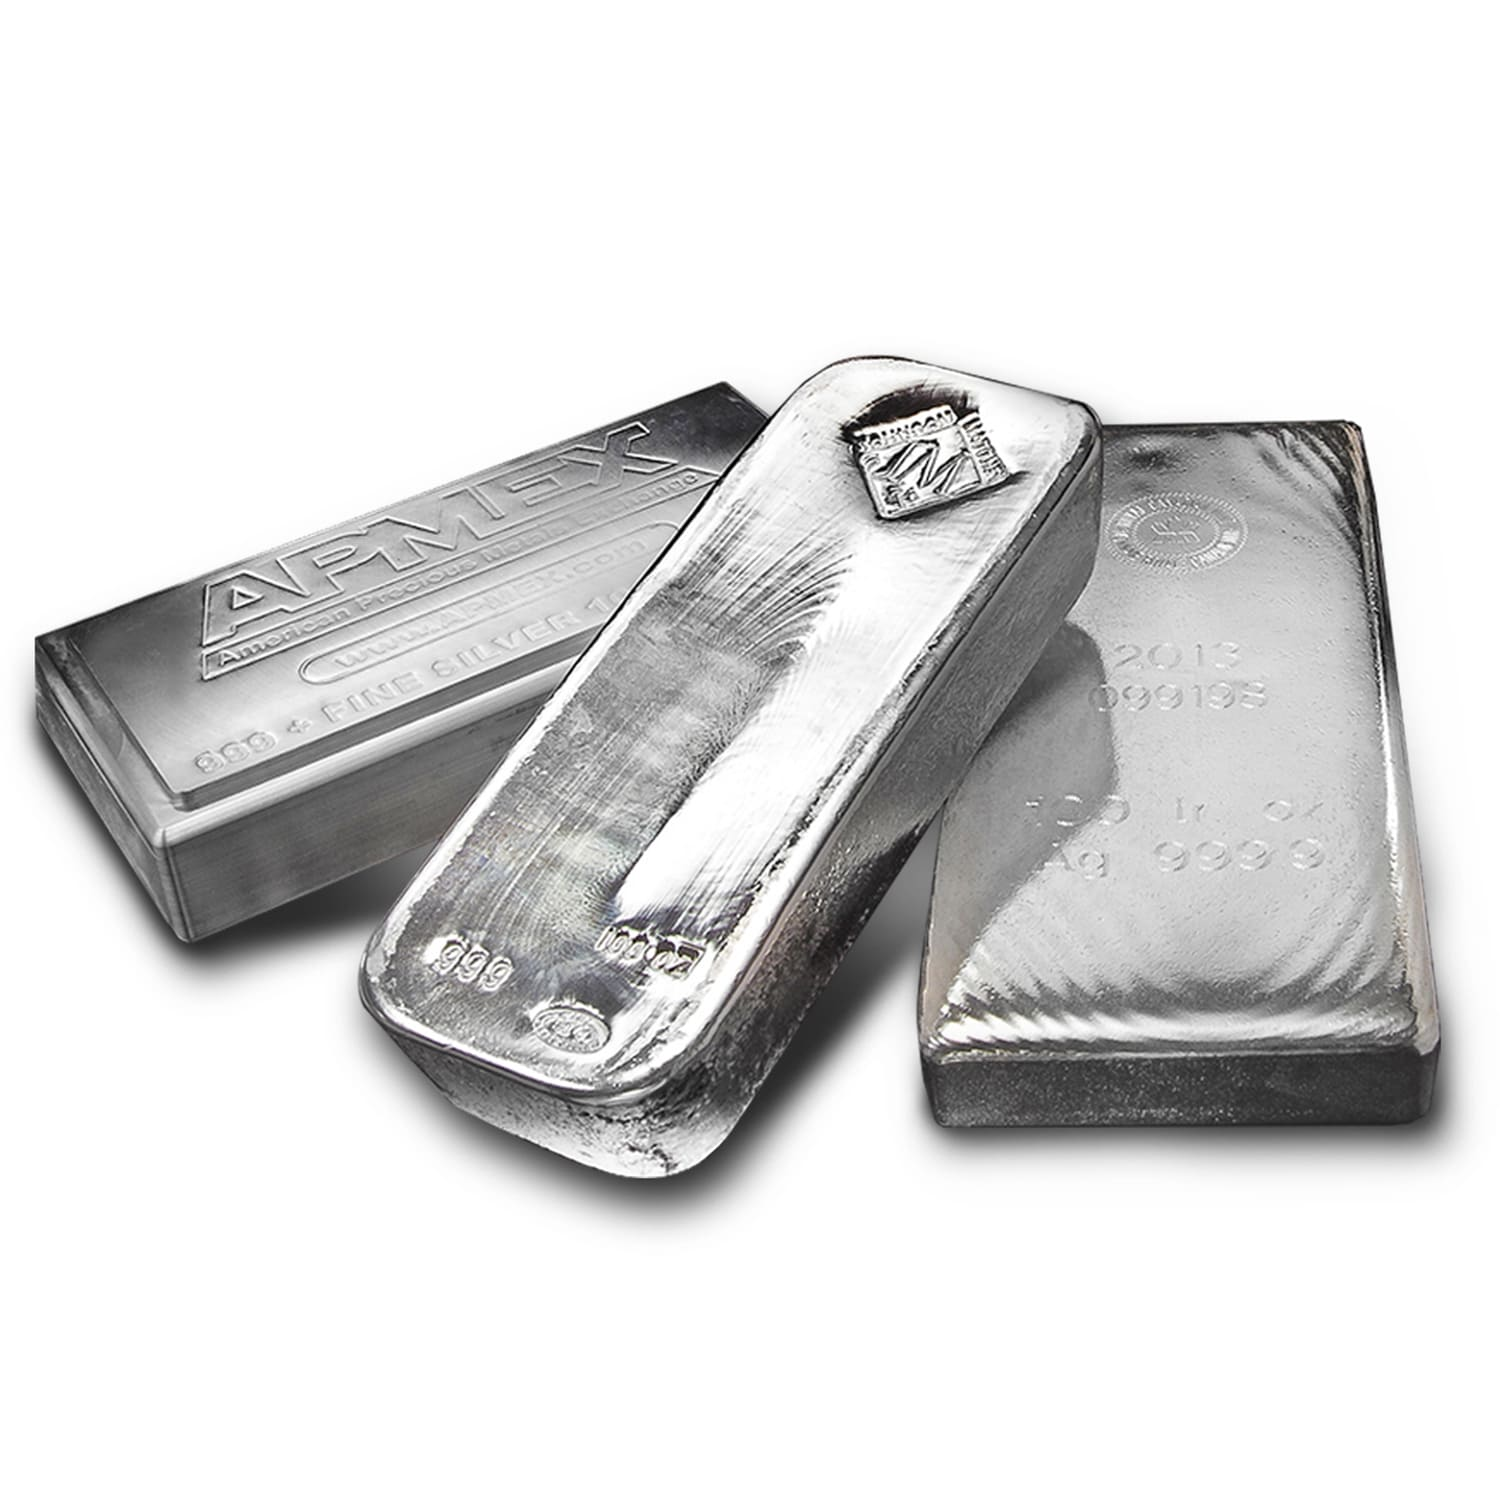 97.00 oz Silver Bar - Secondary Market